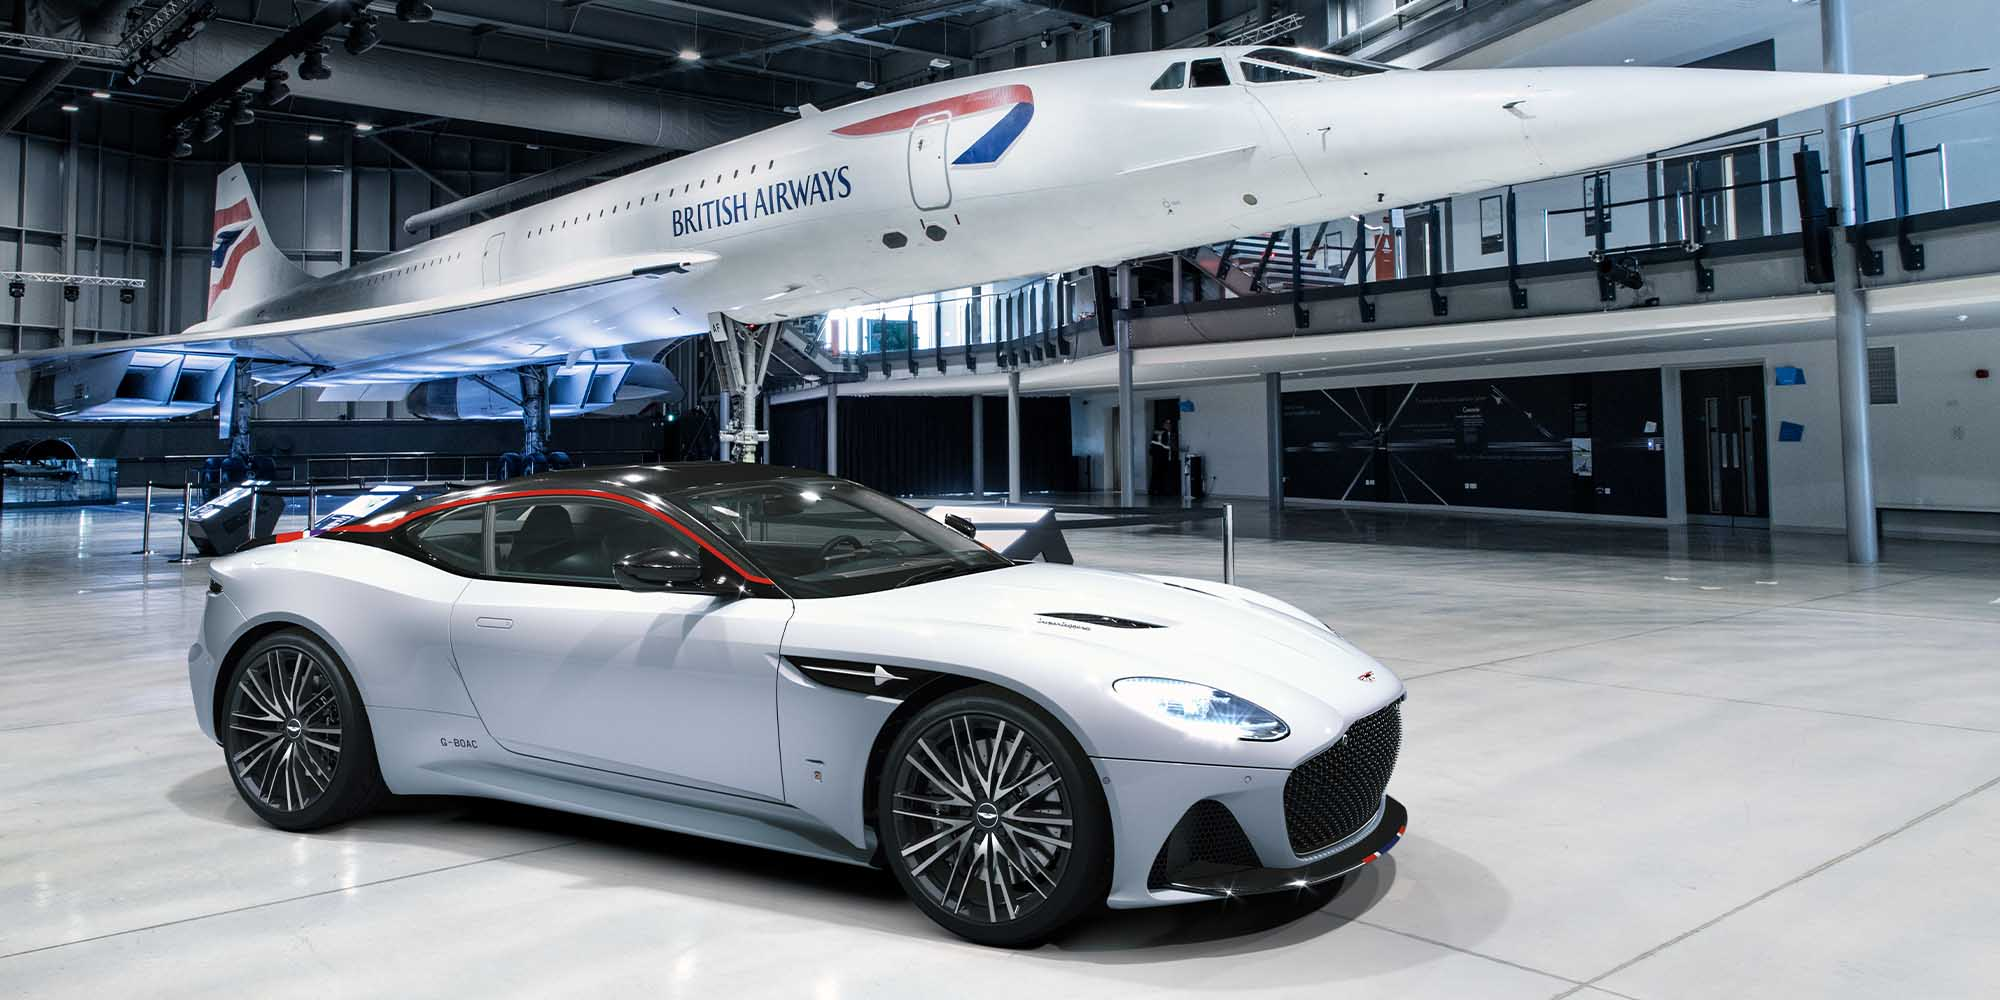 Aston Martin commemorates Concorde with special edition Superleggera